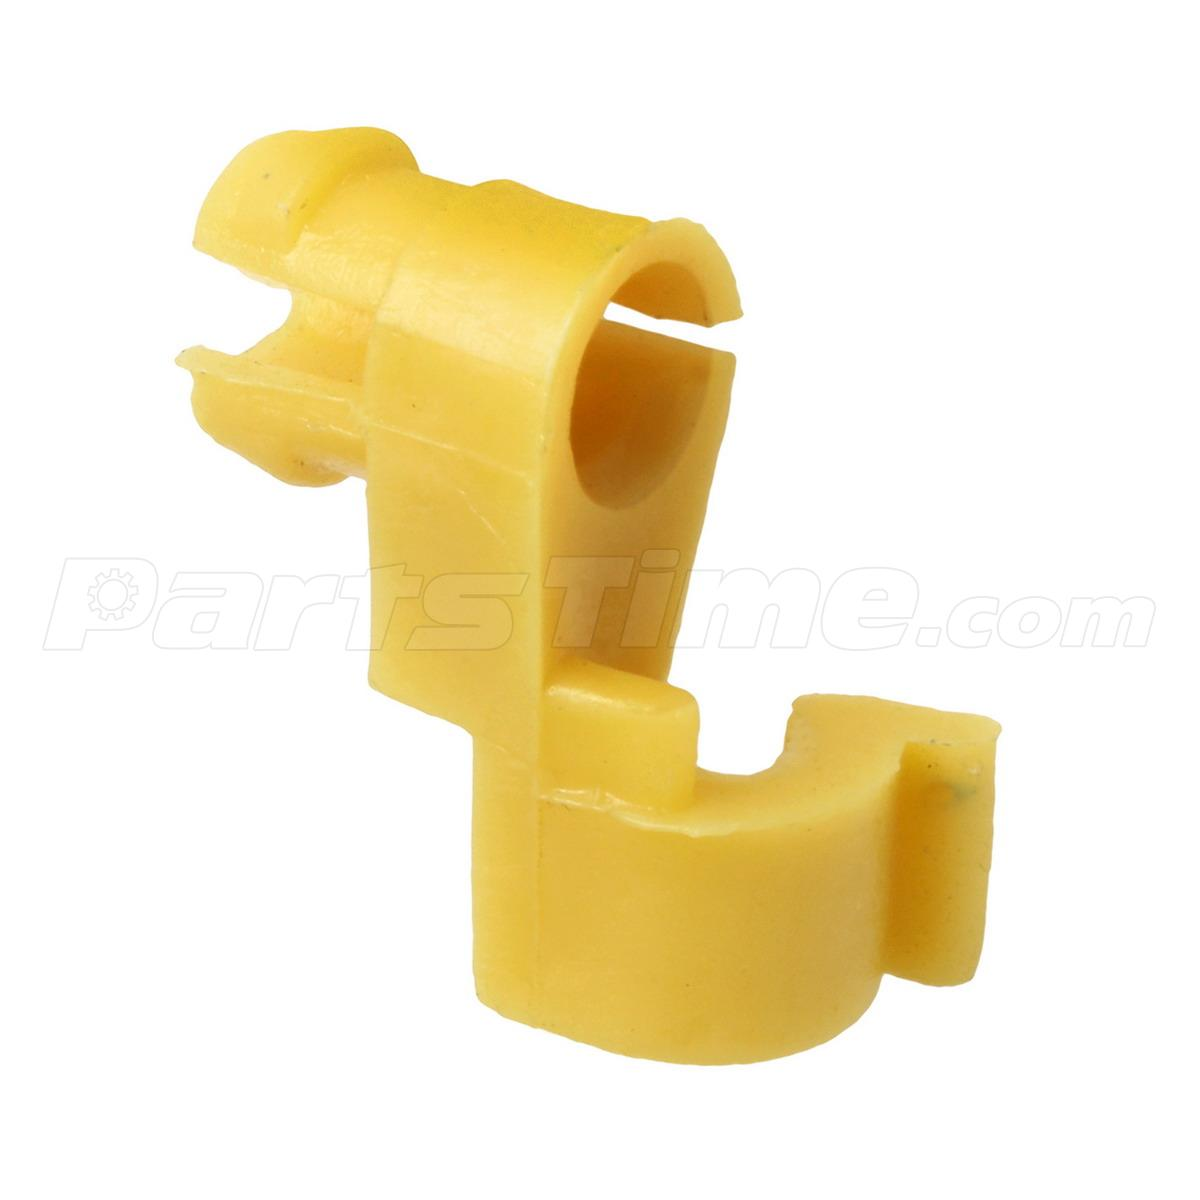 30 Door Lock 5mm Rod Clip Driver Side Handle Retainer For